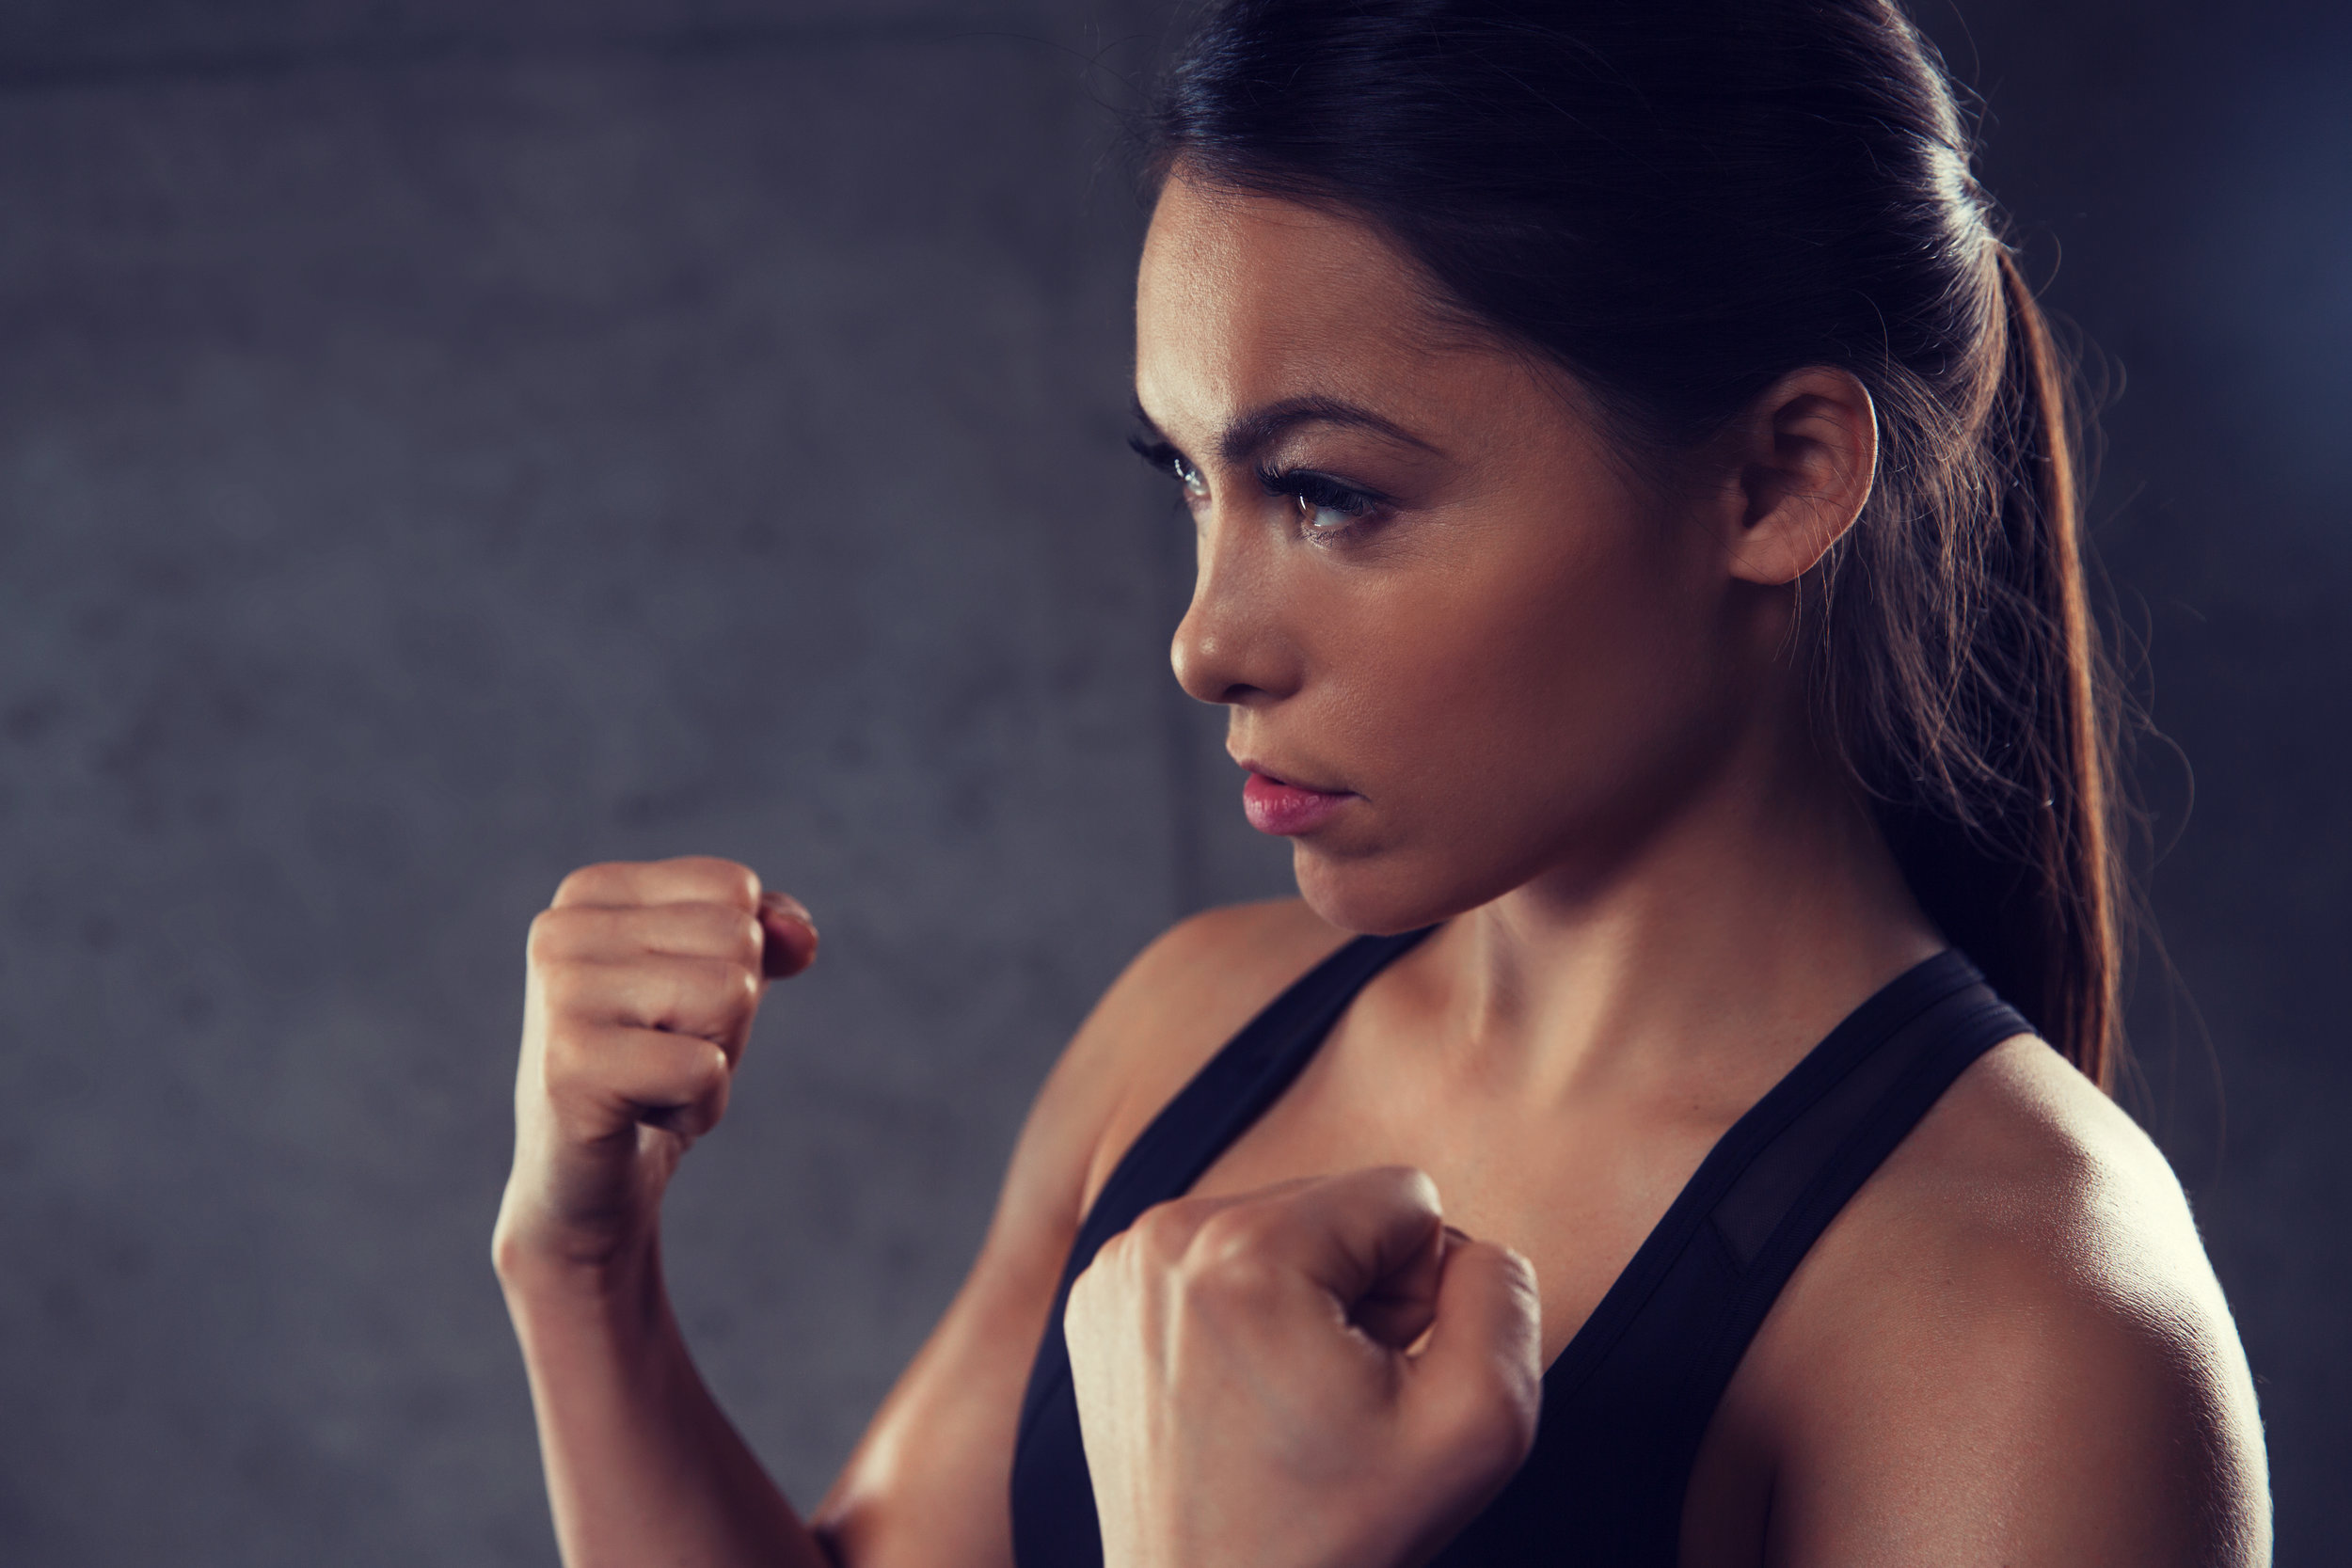 woman-holding-fists-and-fighting-in-gym-PR6KQU8.jpg